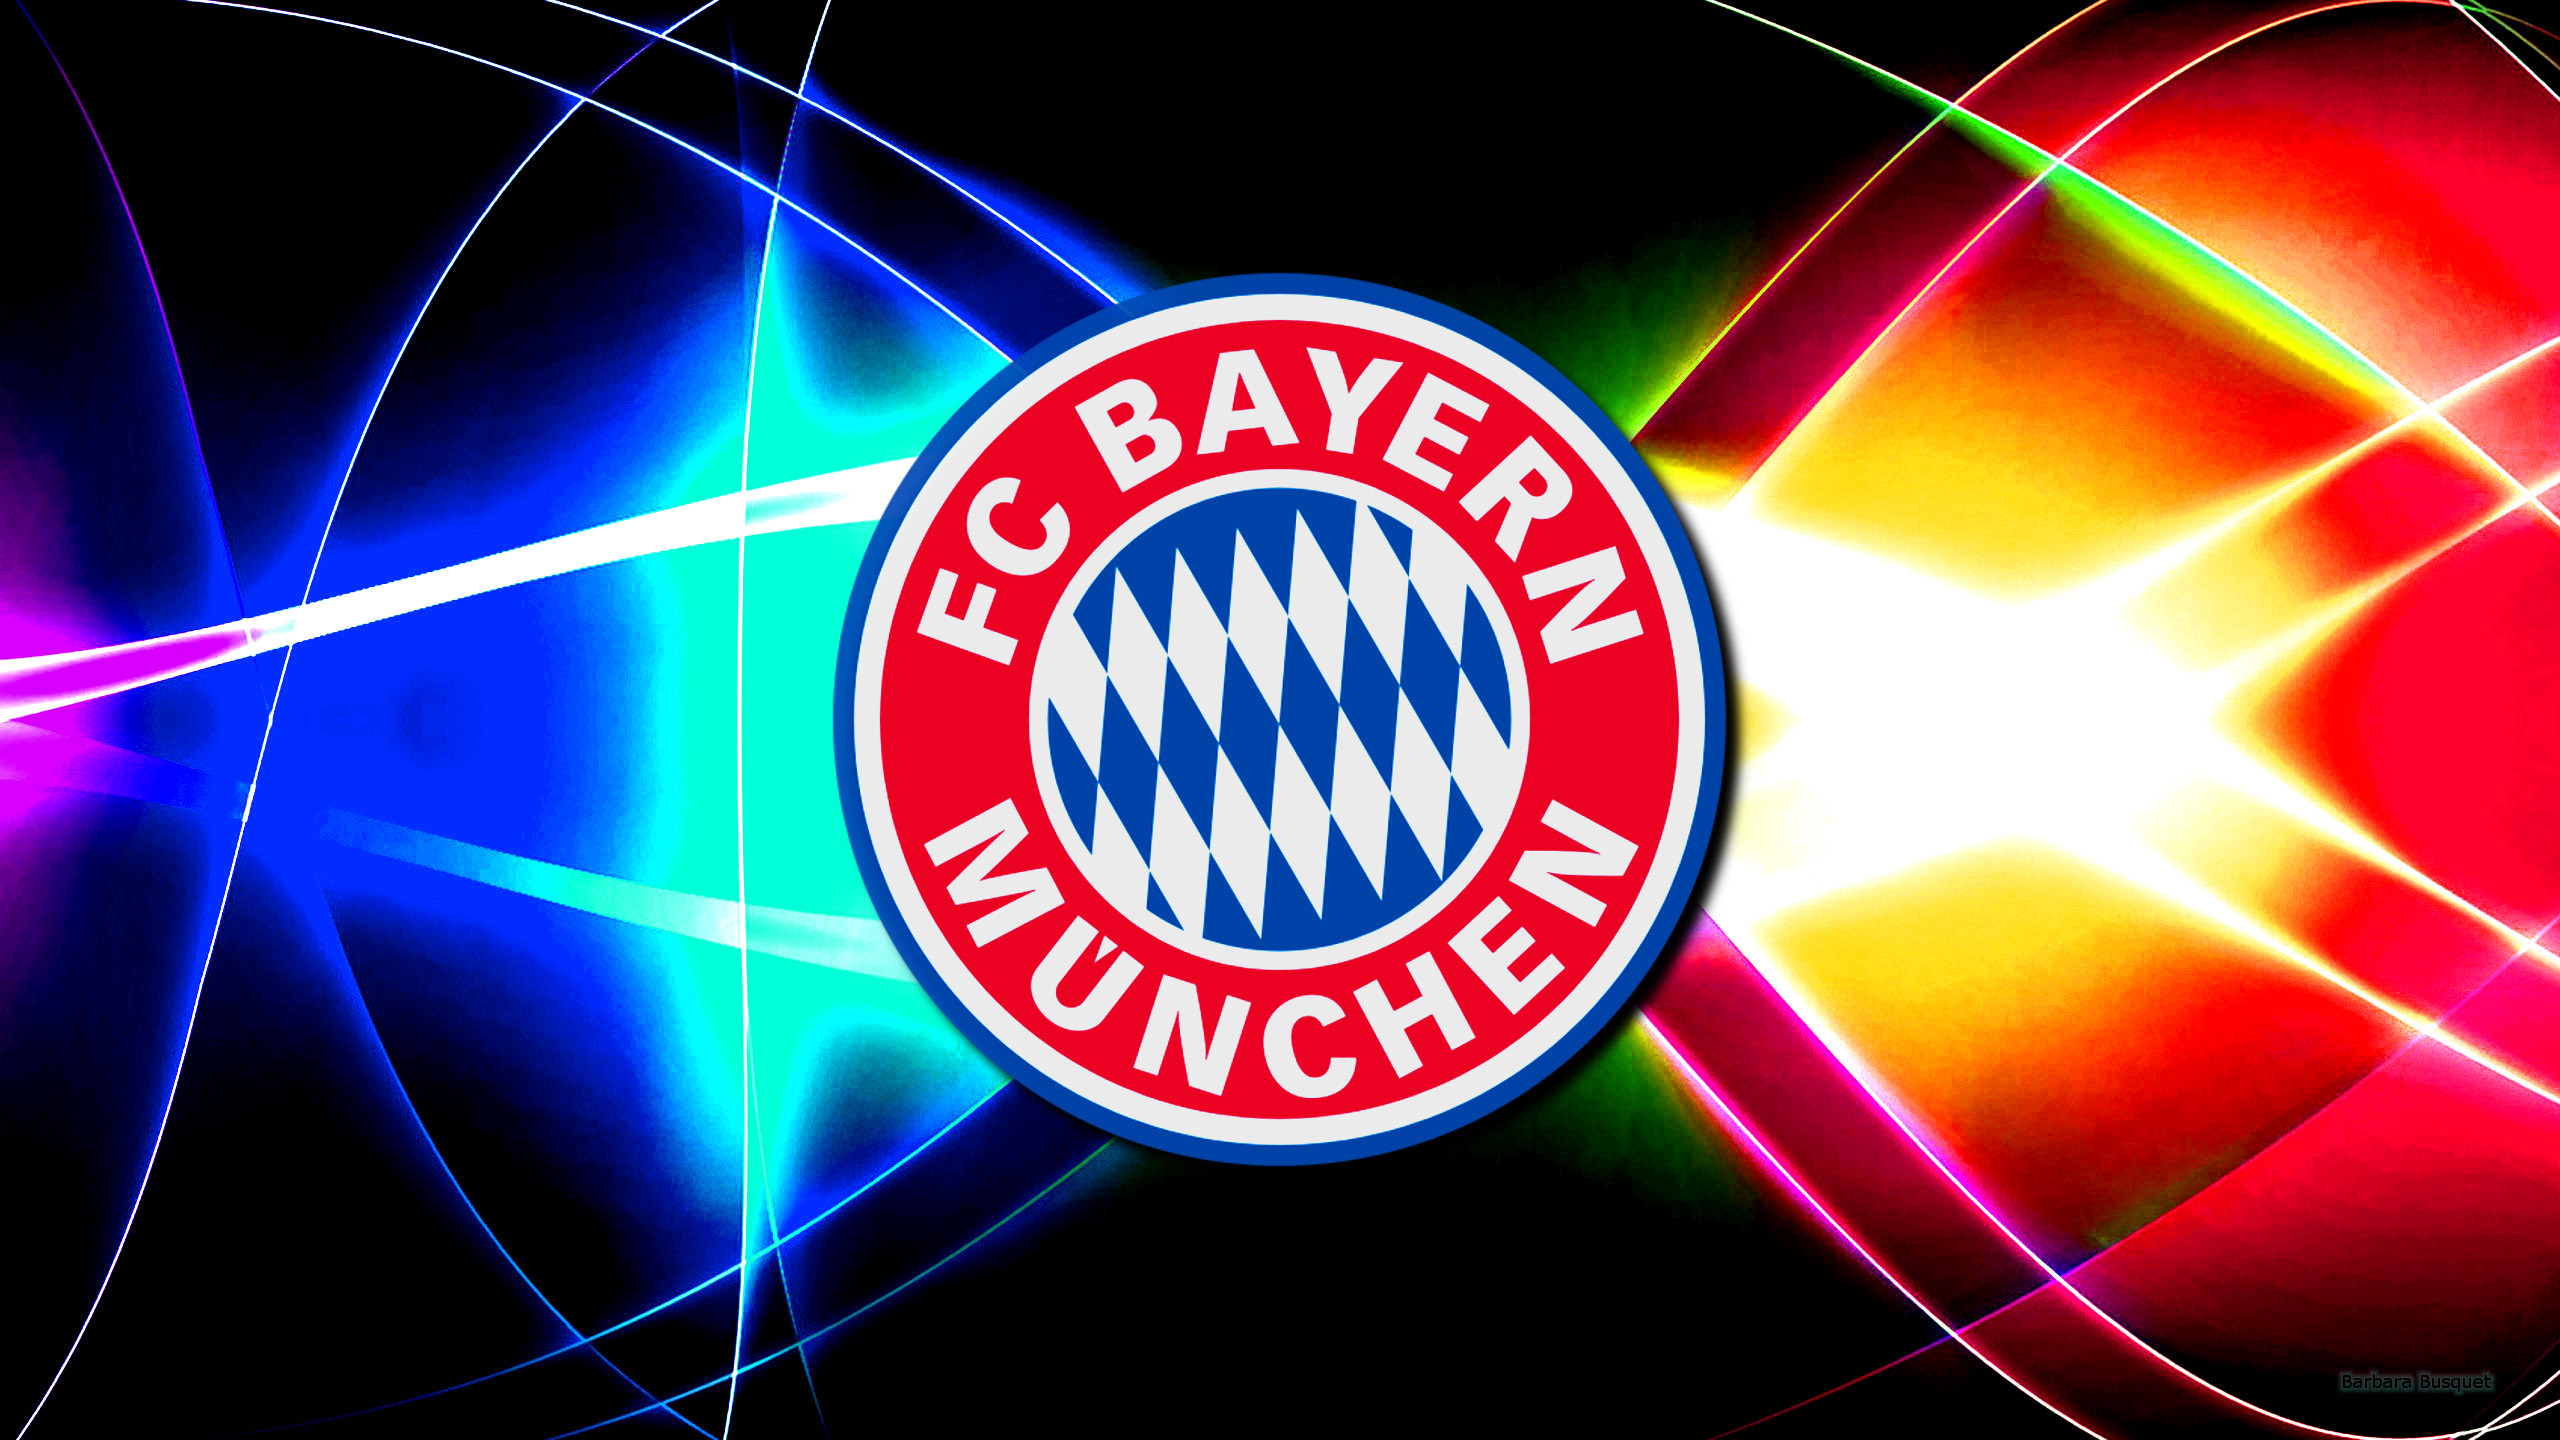 Free Download Fc Bayern Munchen Barbaras Hd Wallpapers 2560x1440 For Your Desktop Mobile Tablet Explore 76 Bayern Munich Wallpapers Bayern Munich Logo Wallpaper Bayern Munich Iphone Wallpaper Bayern Munchen